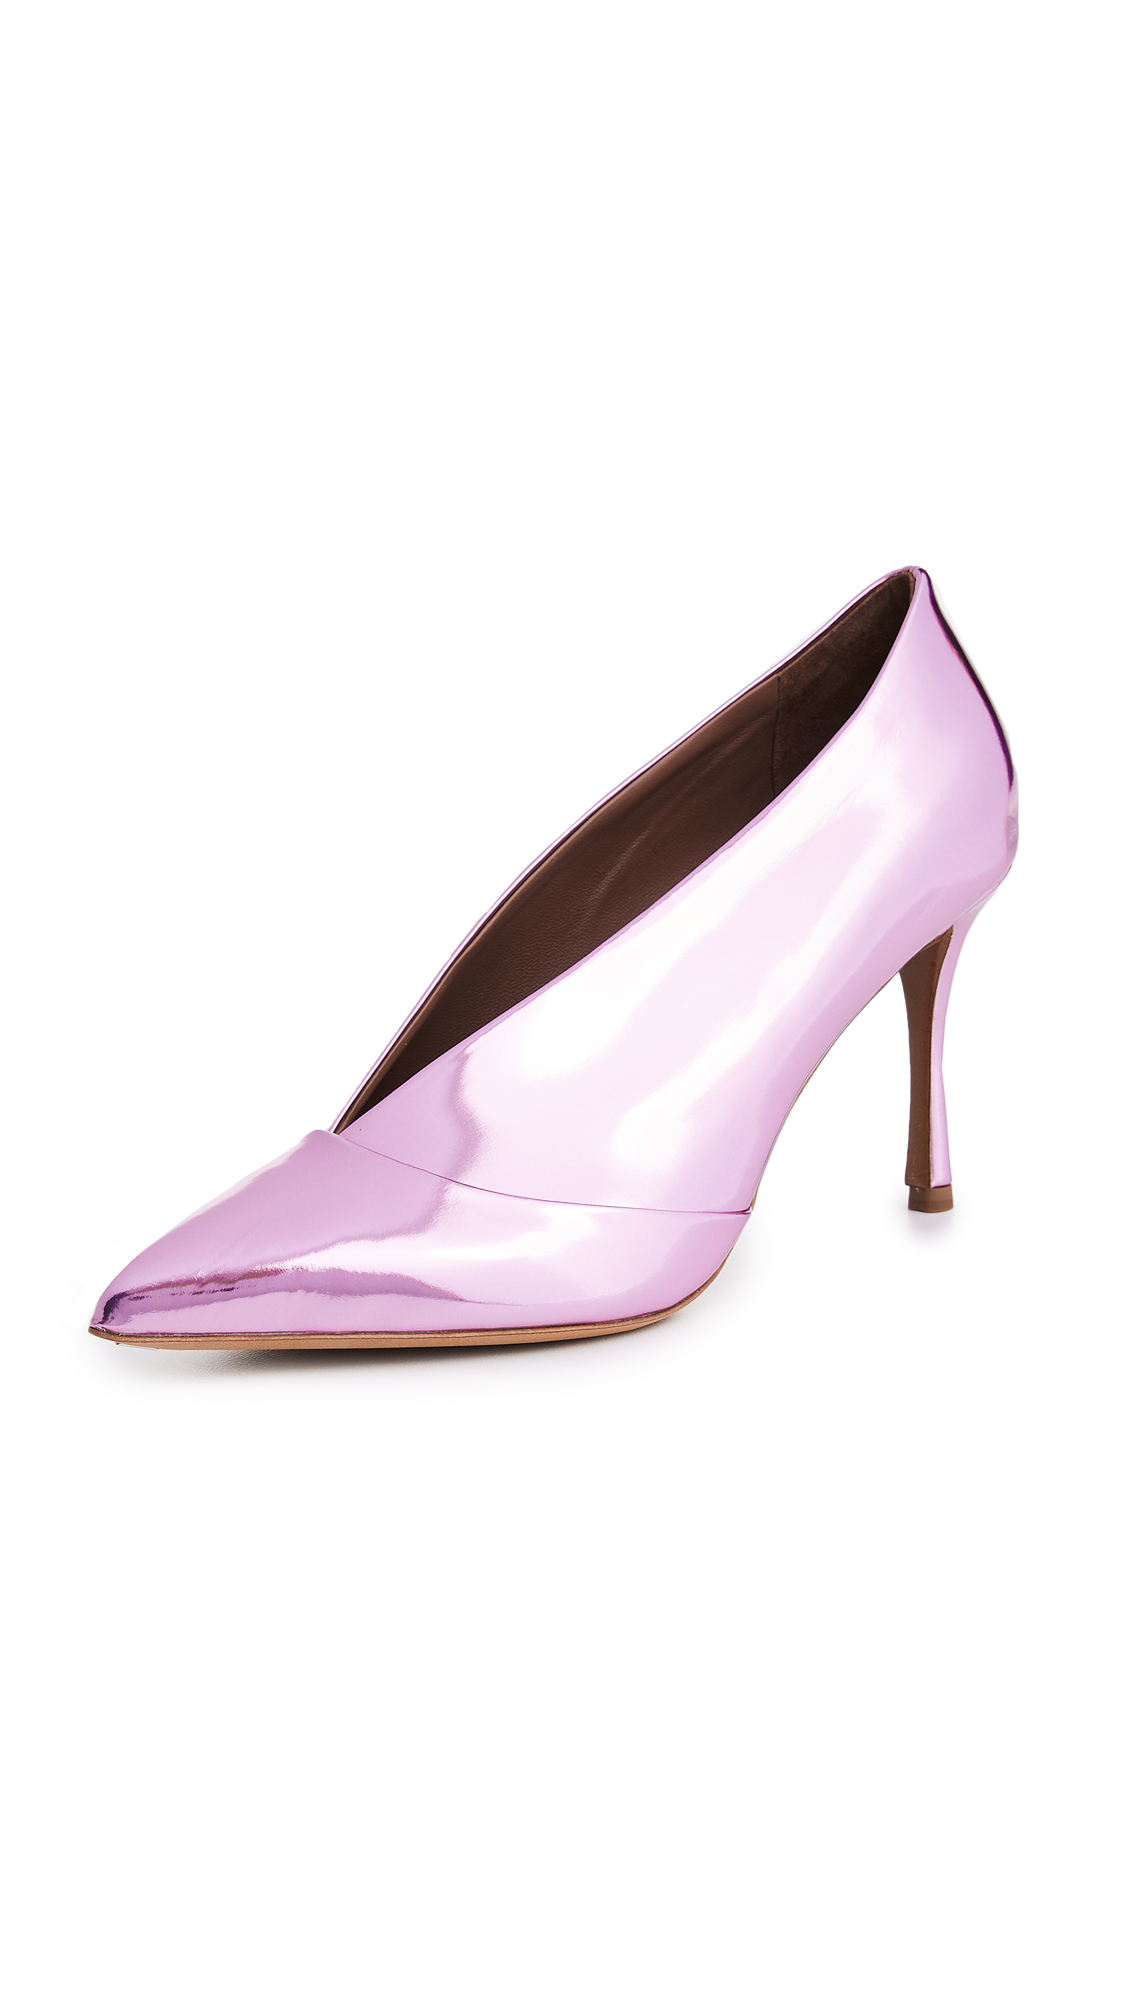 Tabitha Simmons Strike Metallic Pumps - Light Pink